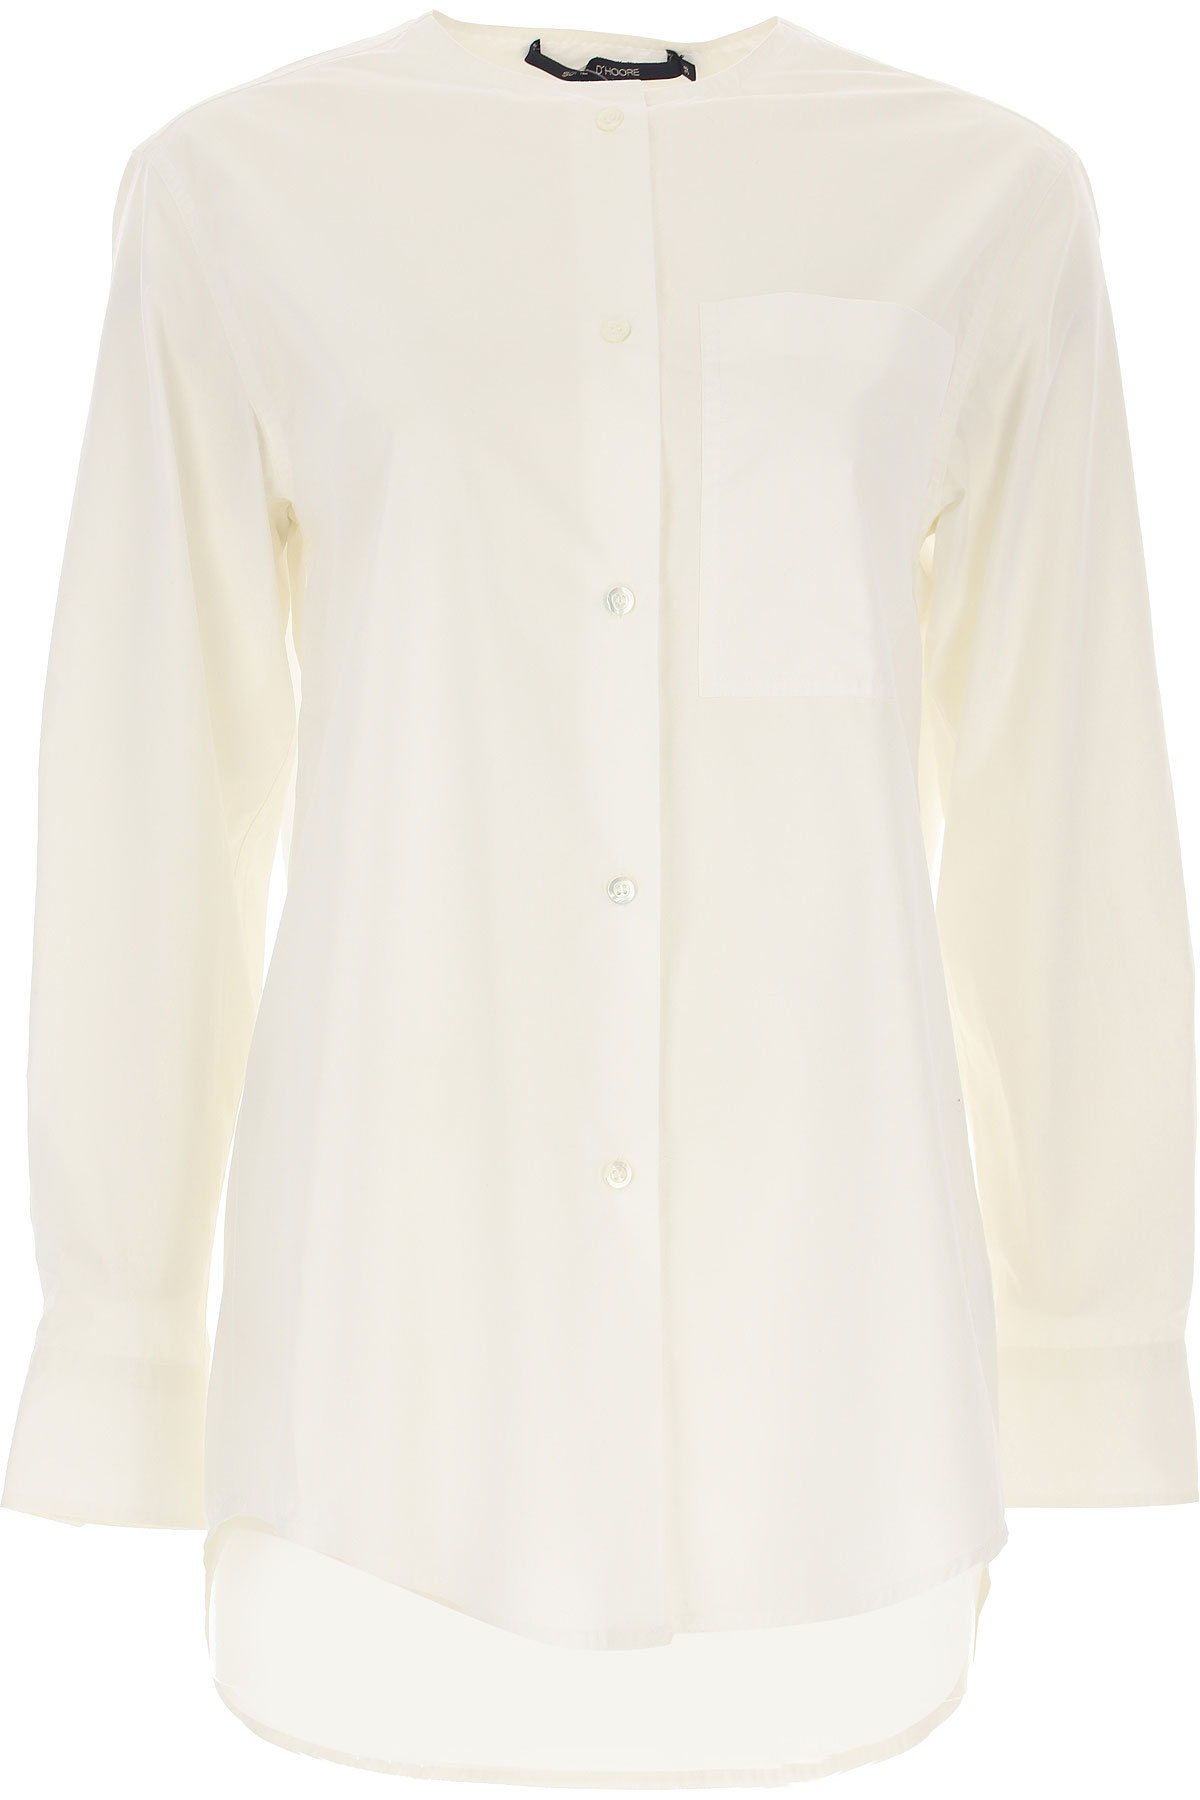 Sofie dHoore Top for Women On Sale, White, Cotton, 2019, 4